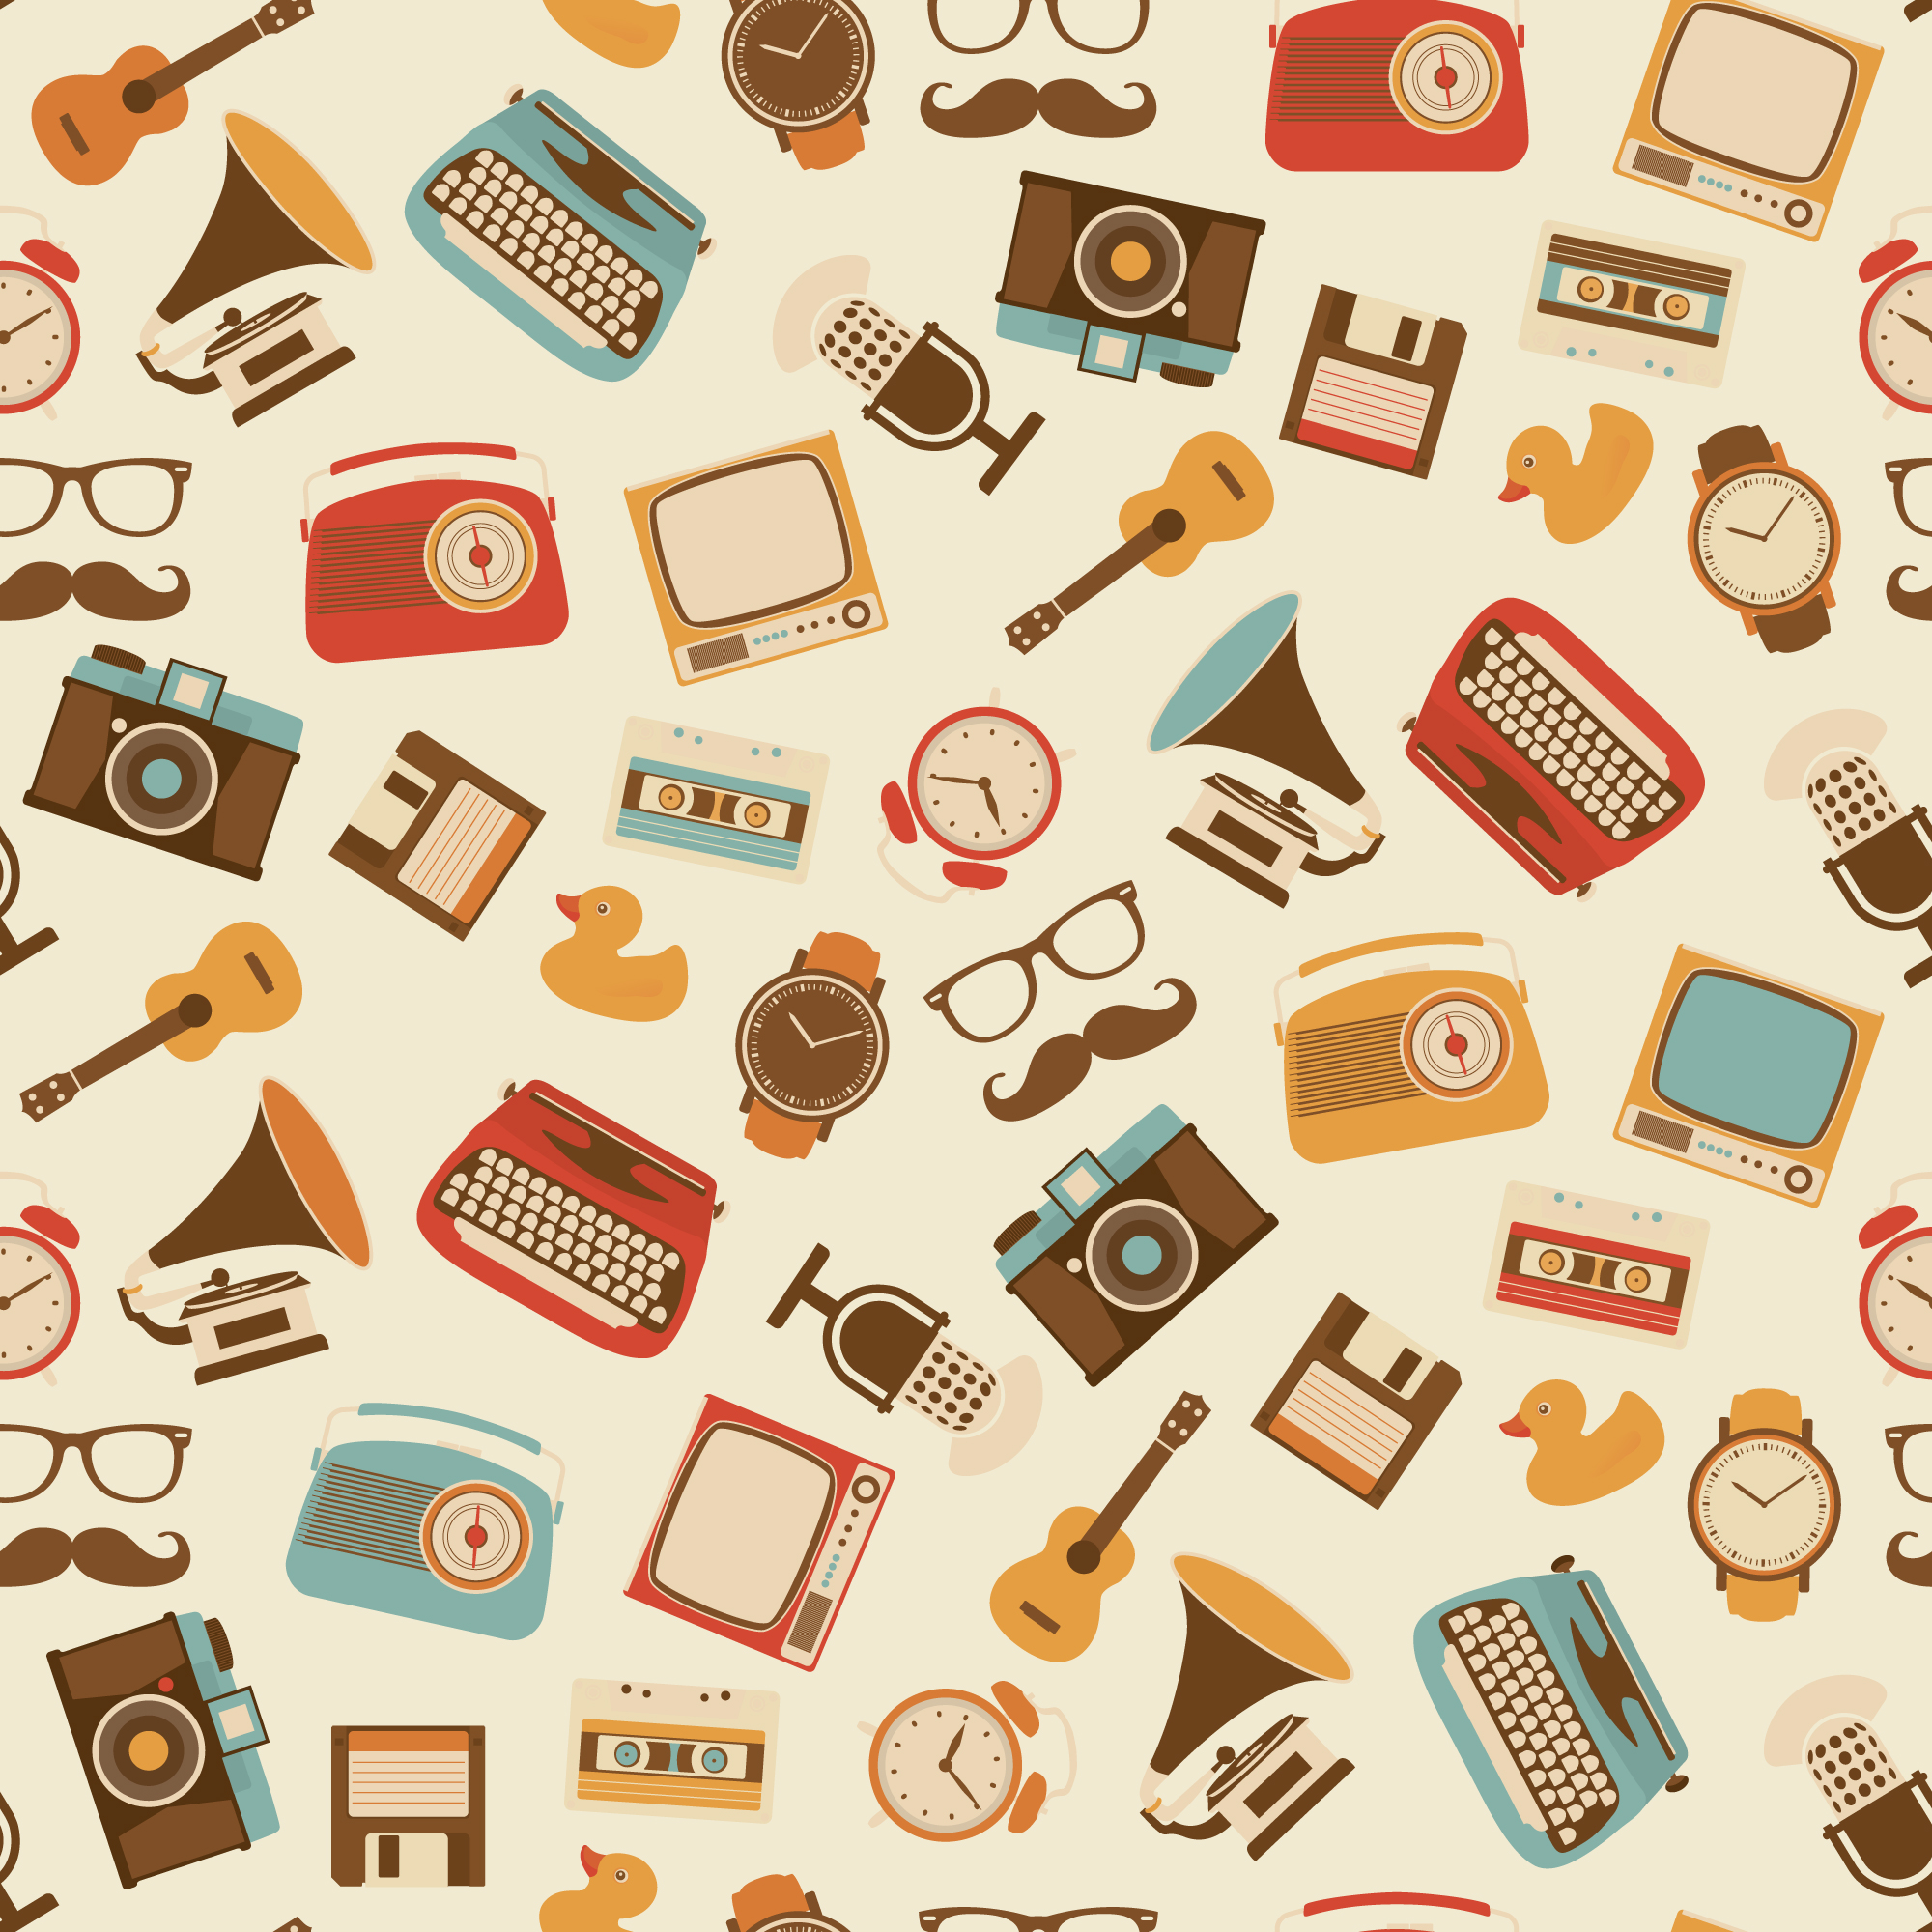 Vintage objects pattern design